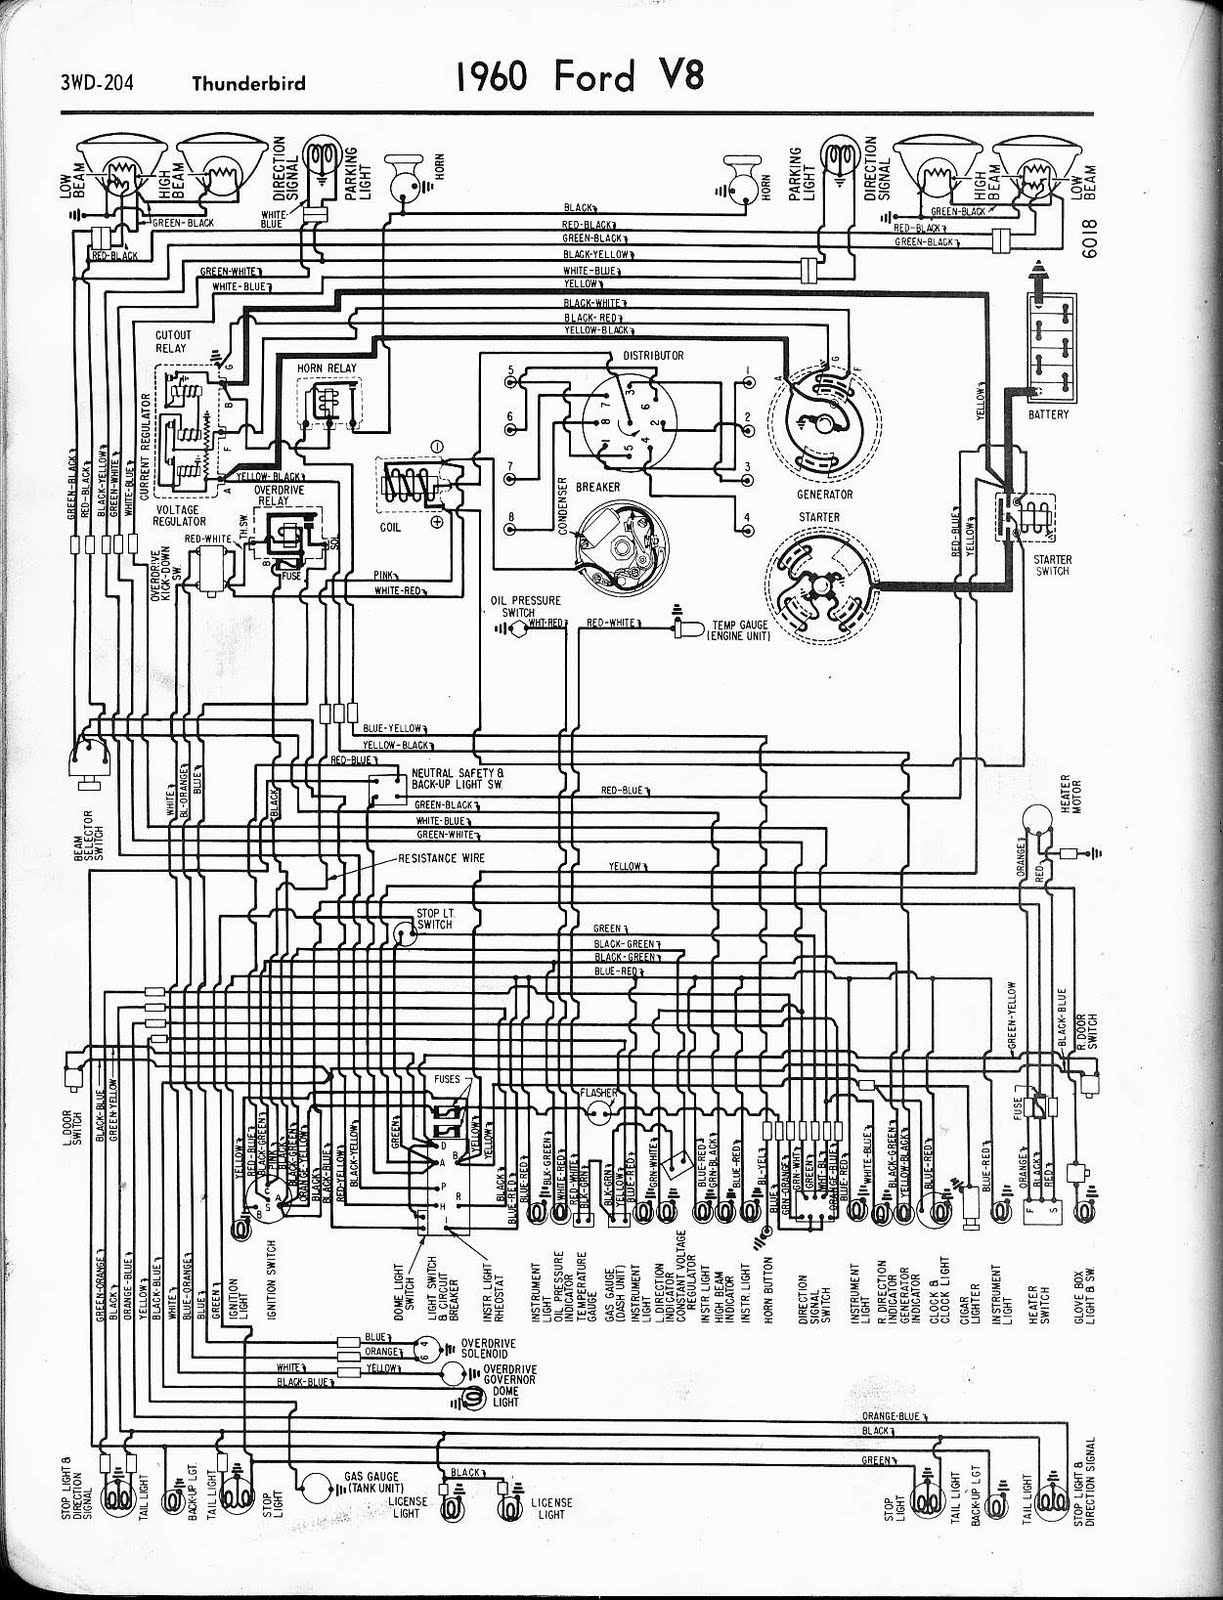 1960 Ford Headlight Switch Wiring Diagram 1954 Free Auto V8 Thunderbird Rh Autowiringdiagram Blogspot Com Ranger 1951